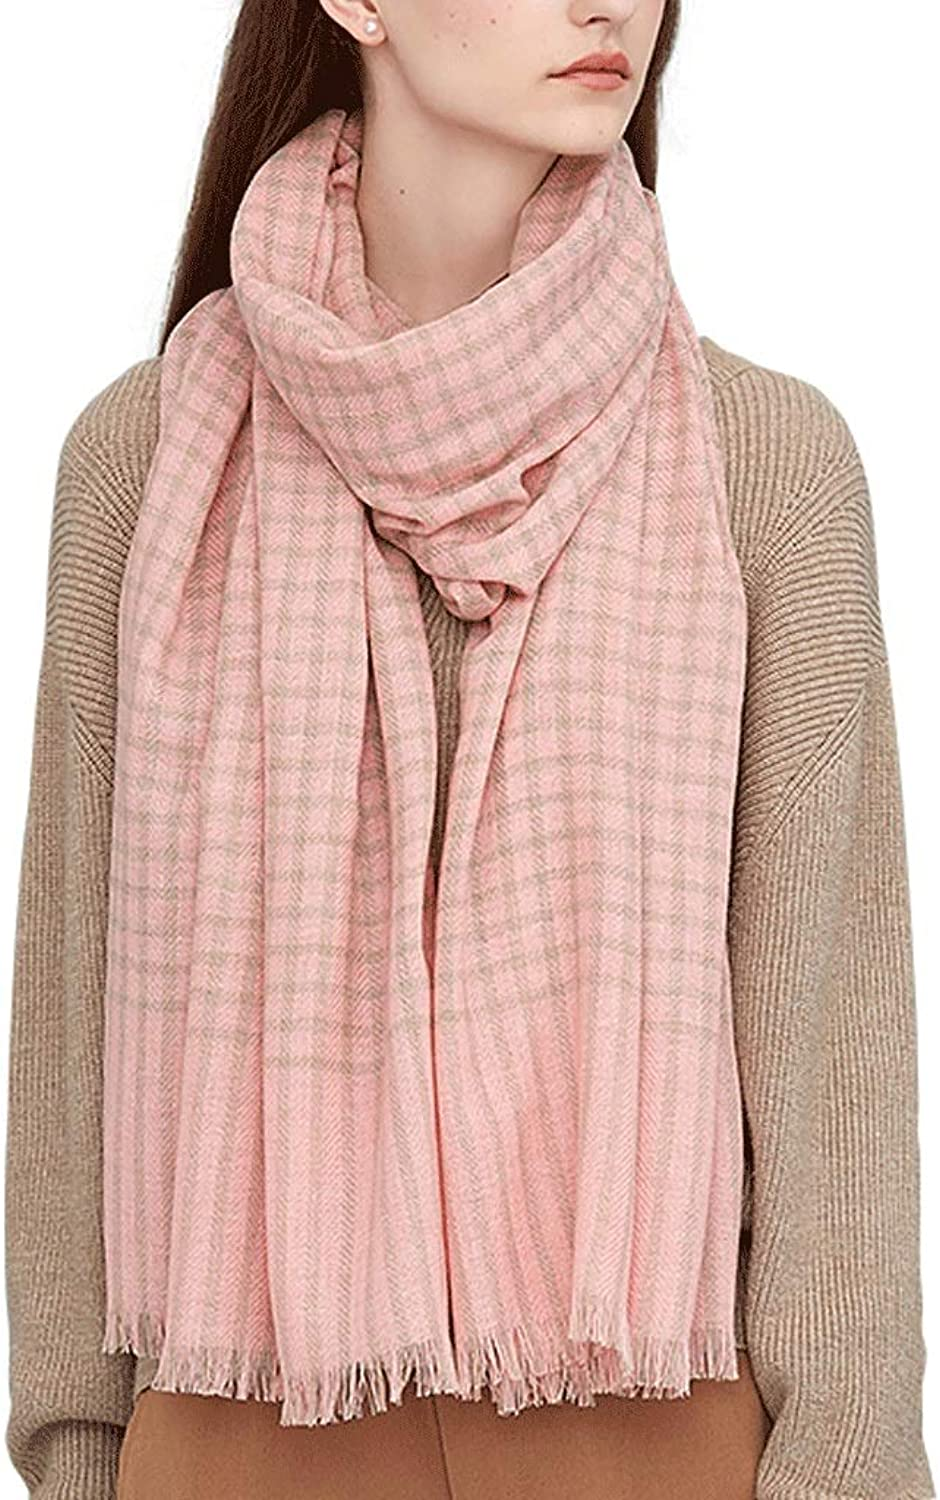 CCF Scarf Shawl Woman Student Lattice Keep Warm Large Size Both Uses 200cm×70cm V (color   Pink)